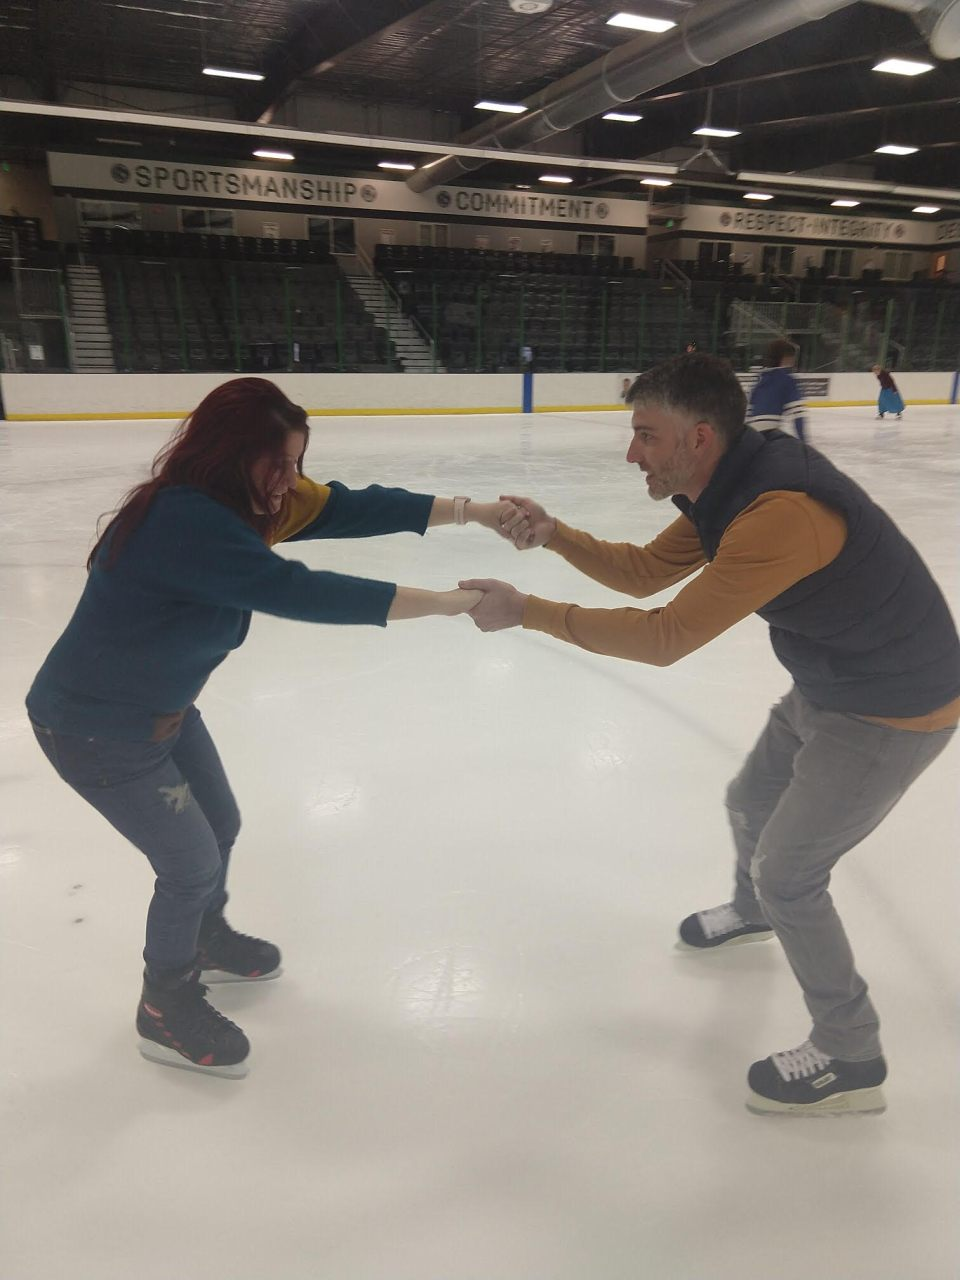 josh and amy skating 2